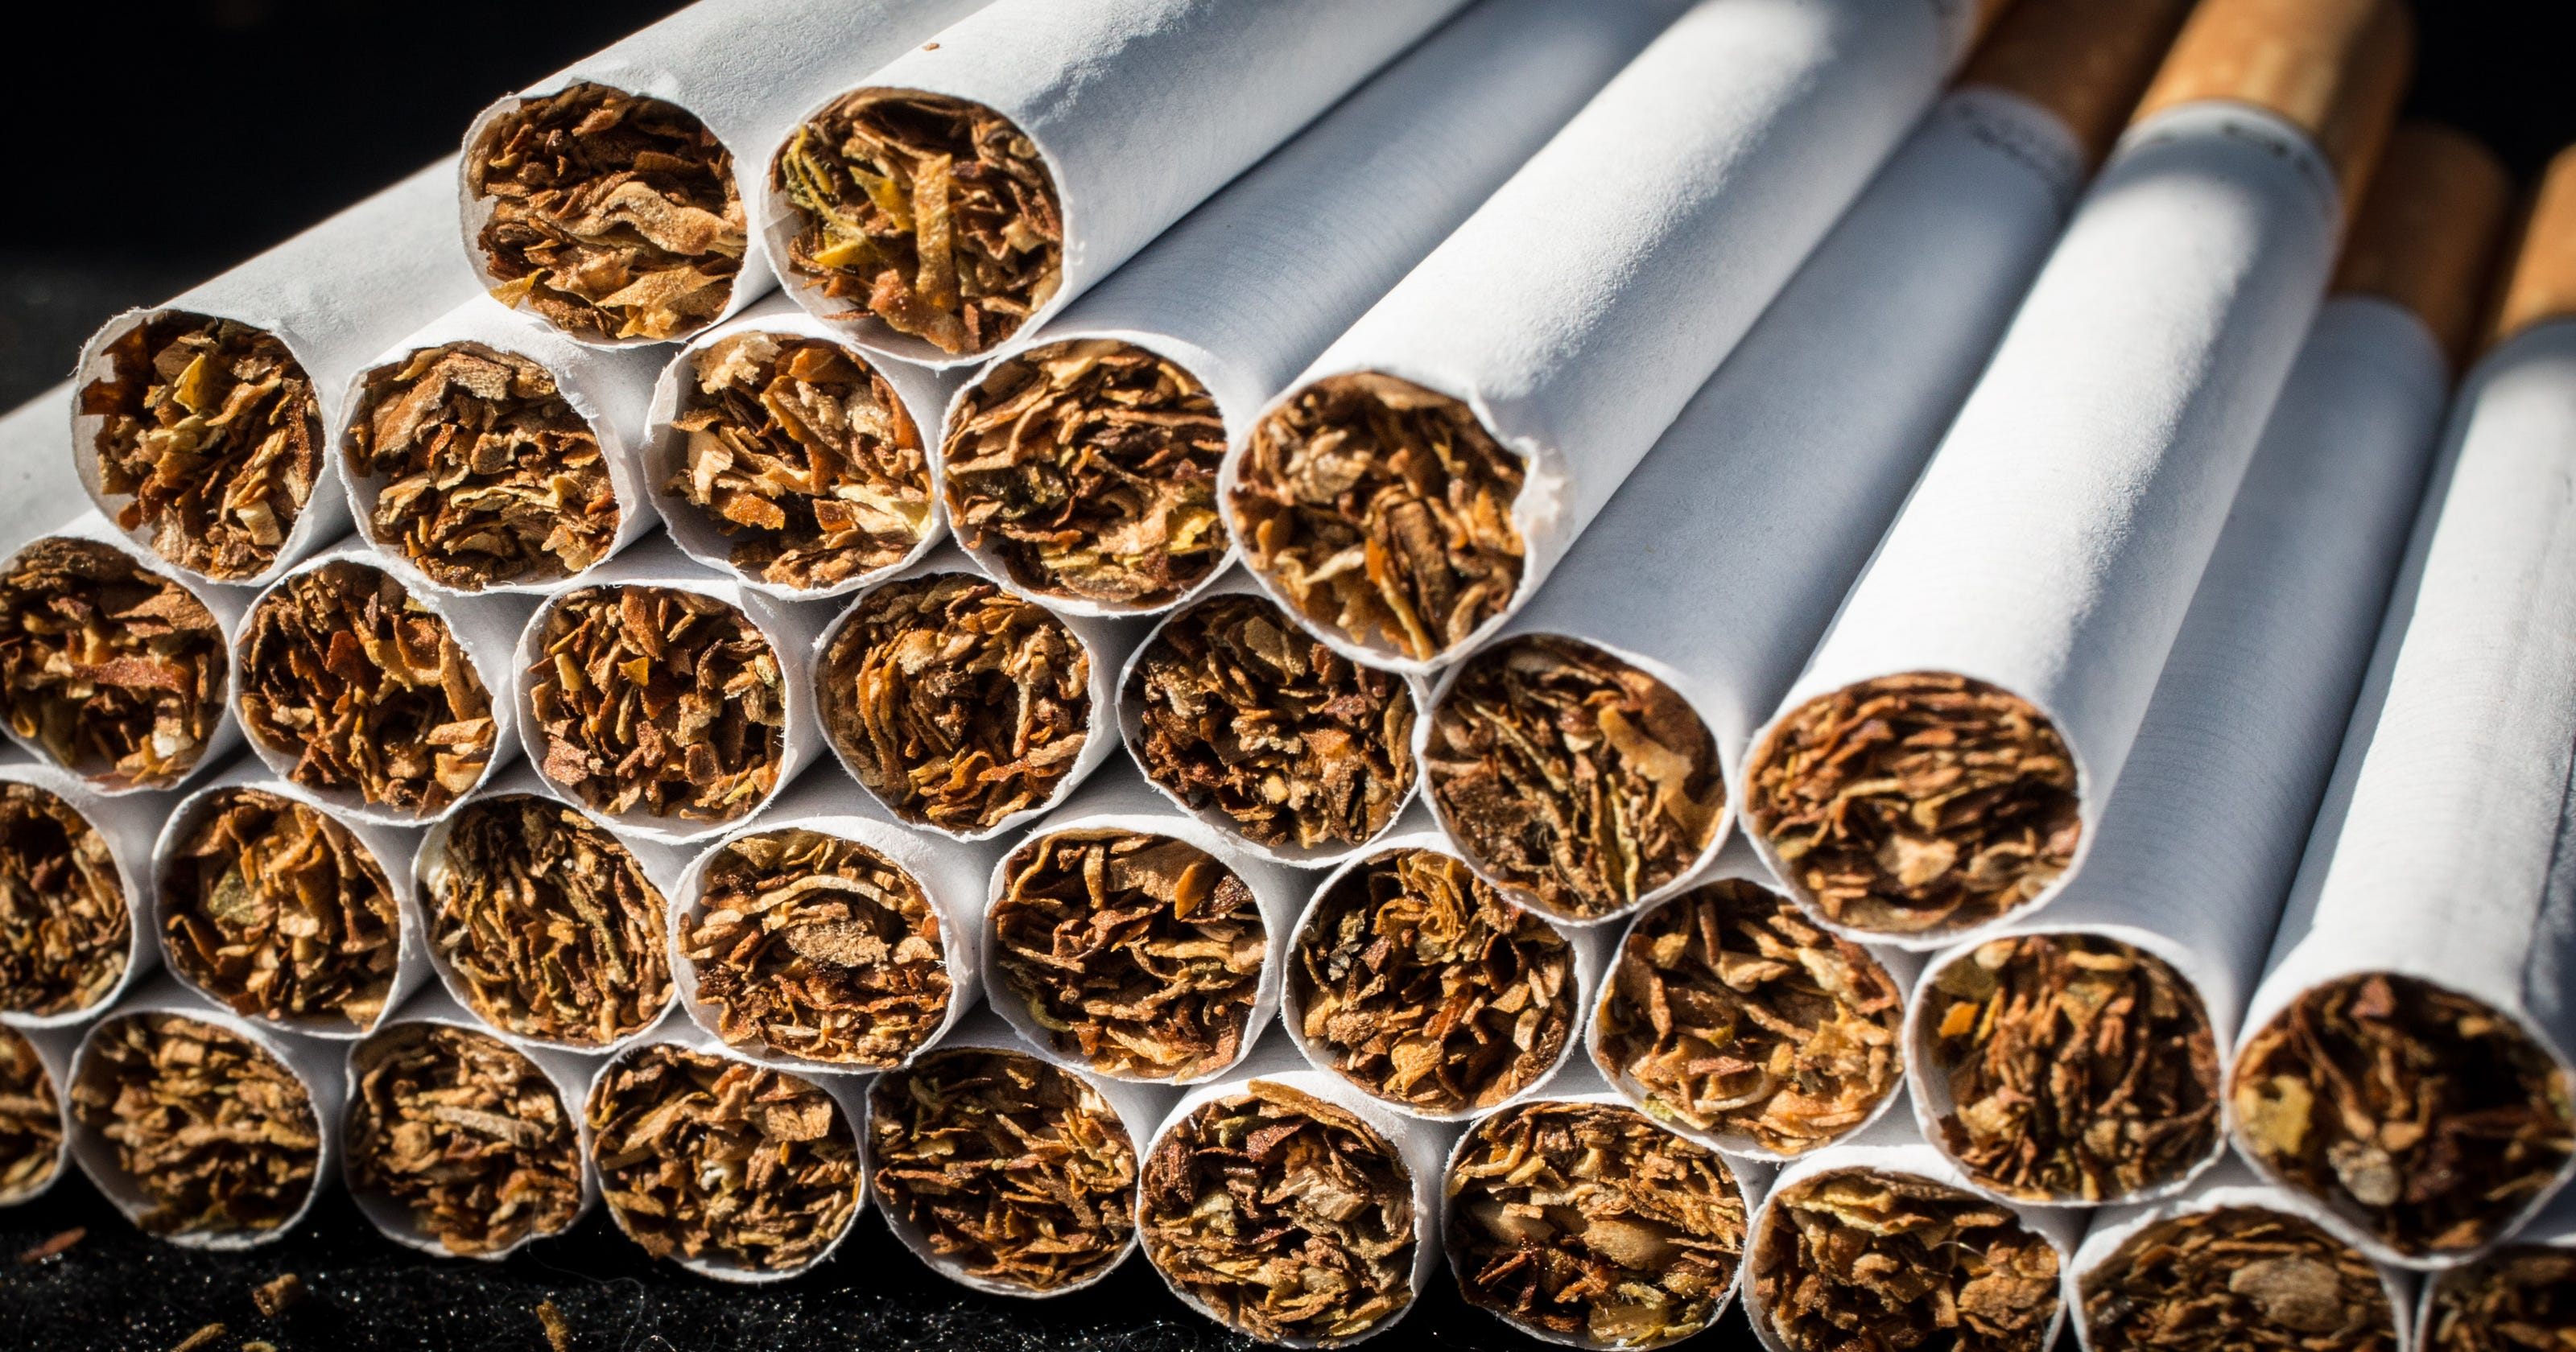 Ulster County raises minimum age for buying tobacco to 21